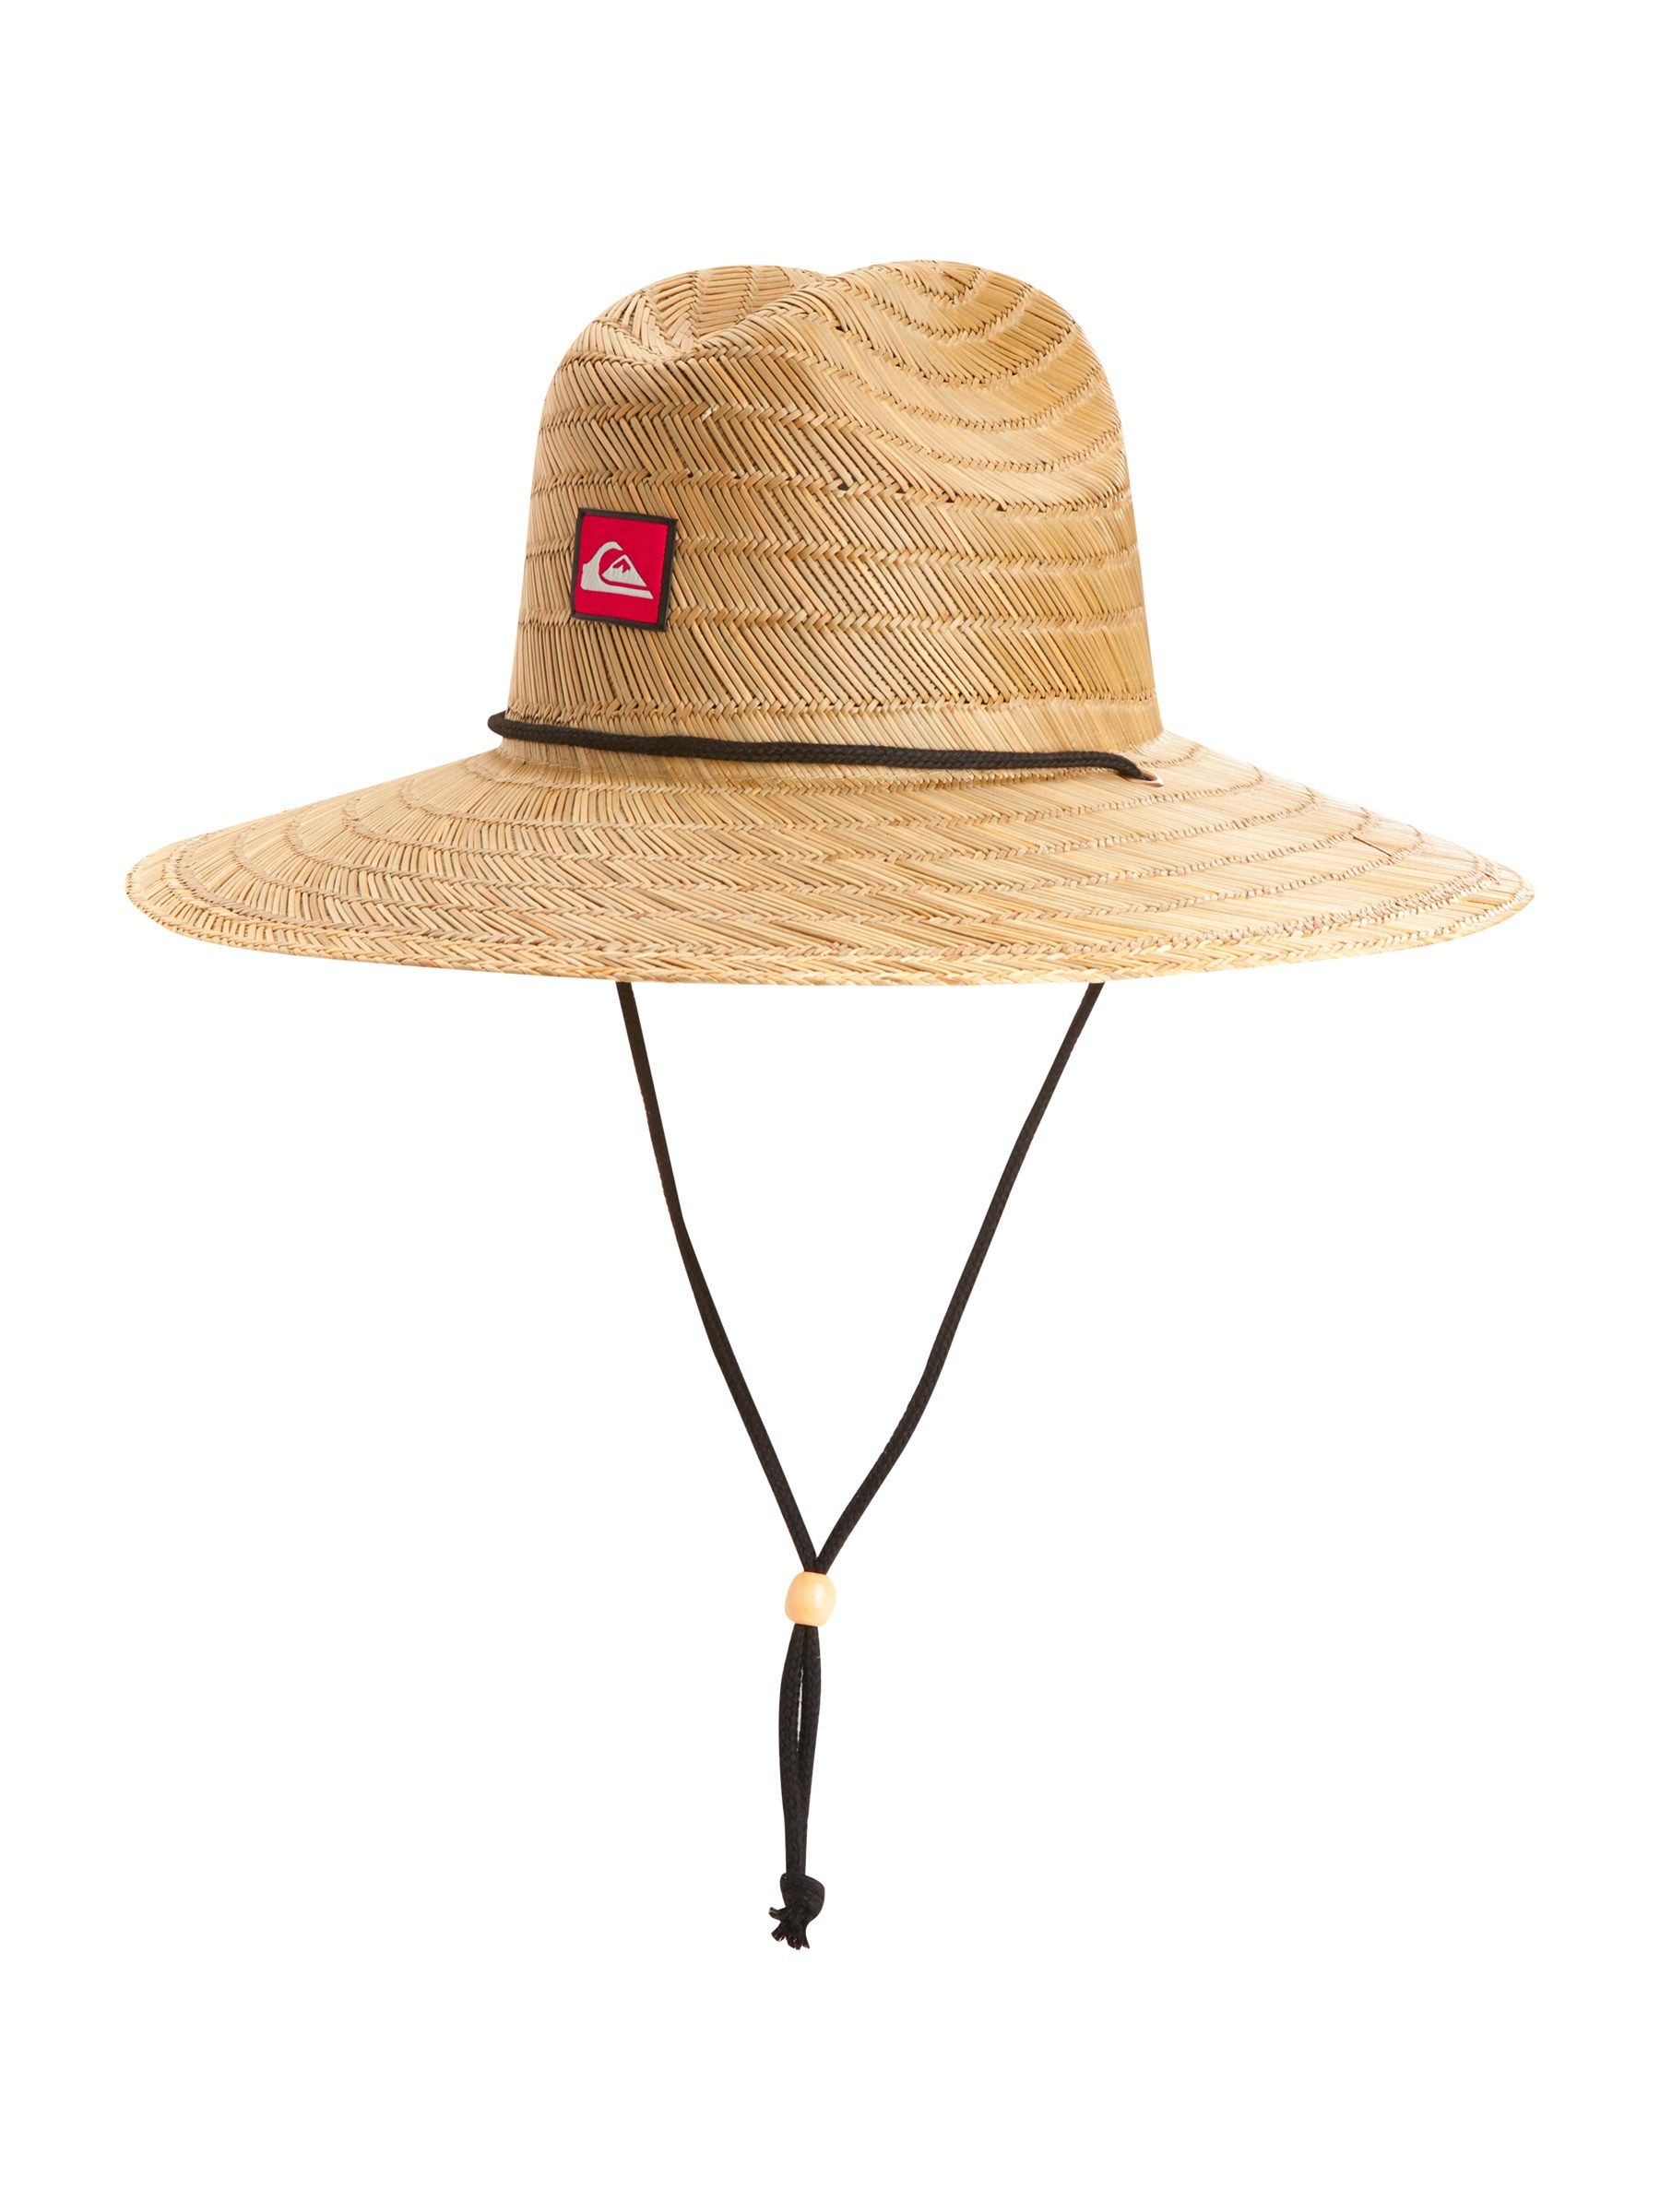 sports shoes 2e945 c713b SS15FCHAT002 - Style - Straw Hat Sun Hats, Hats Online, Lifeguard, Gloves,